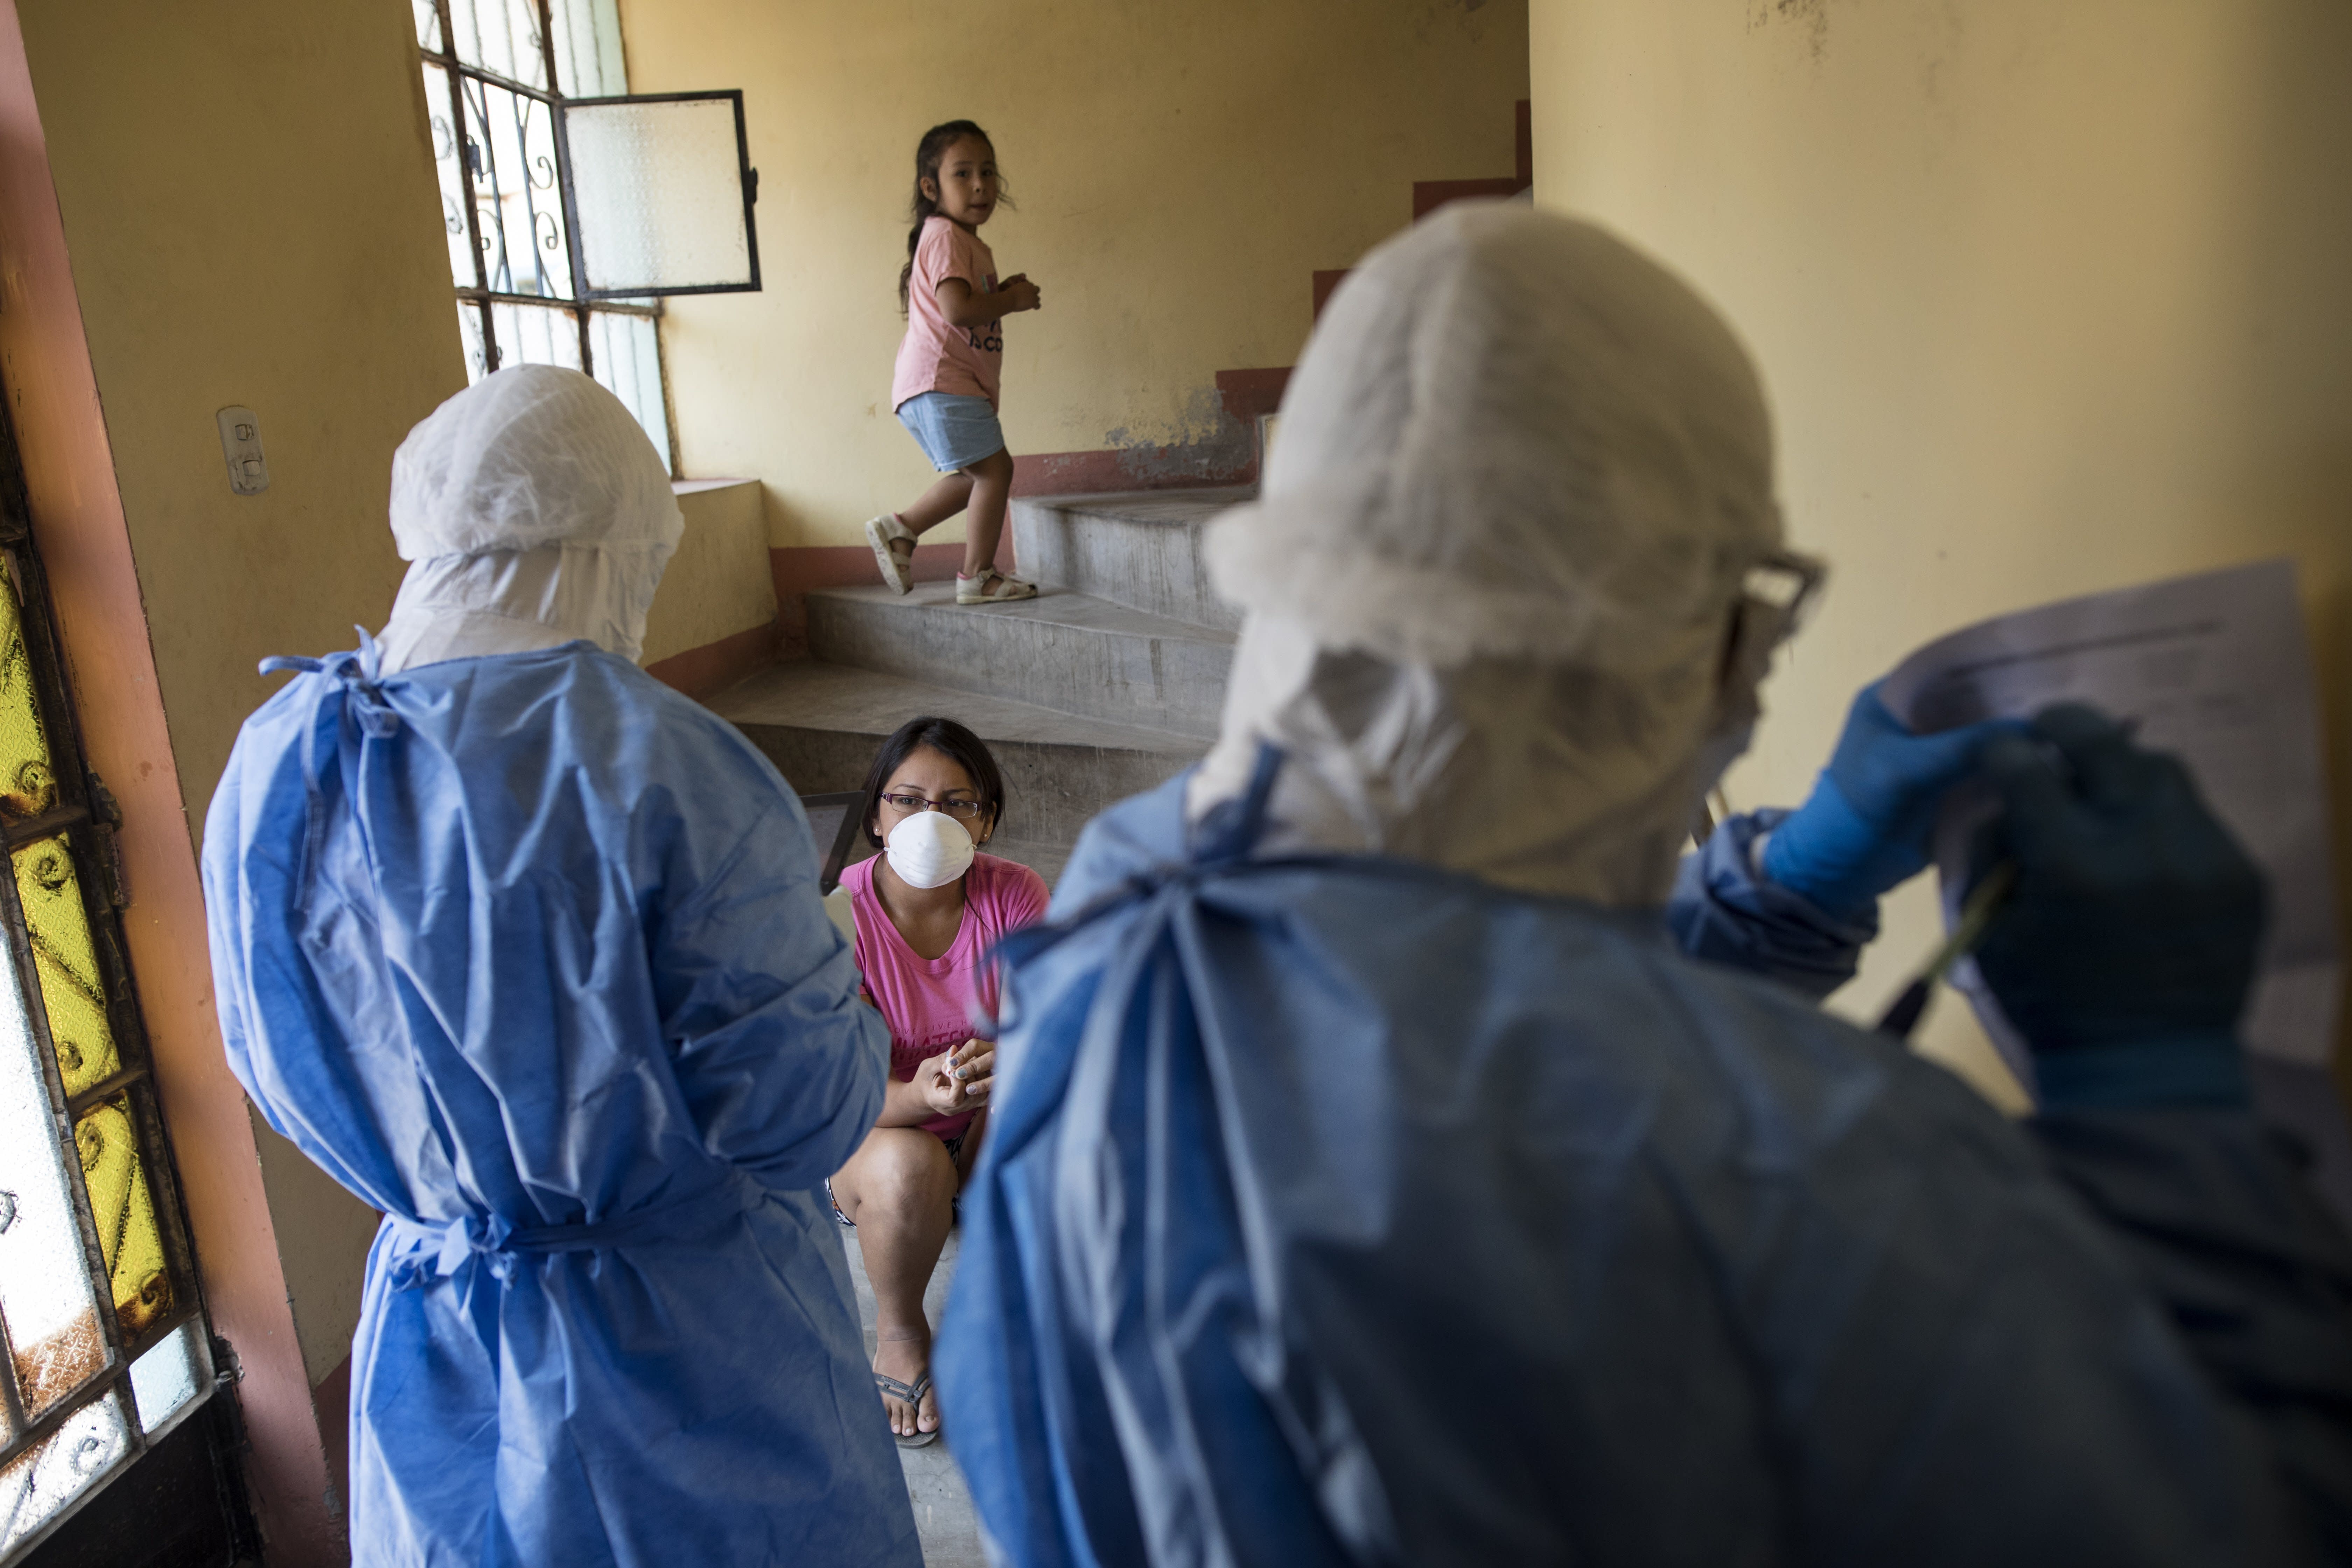 Trump reverses course on power to 'reopen' states amid pandemic